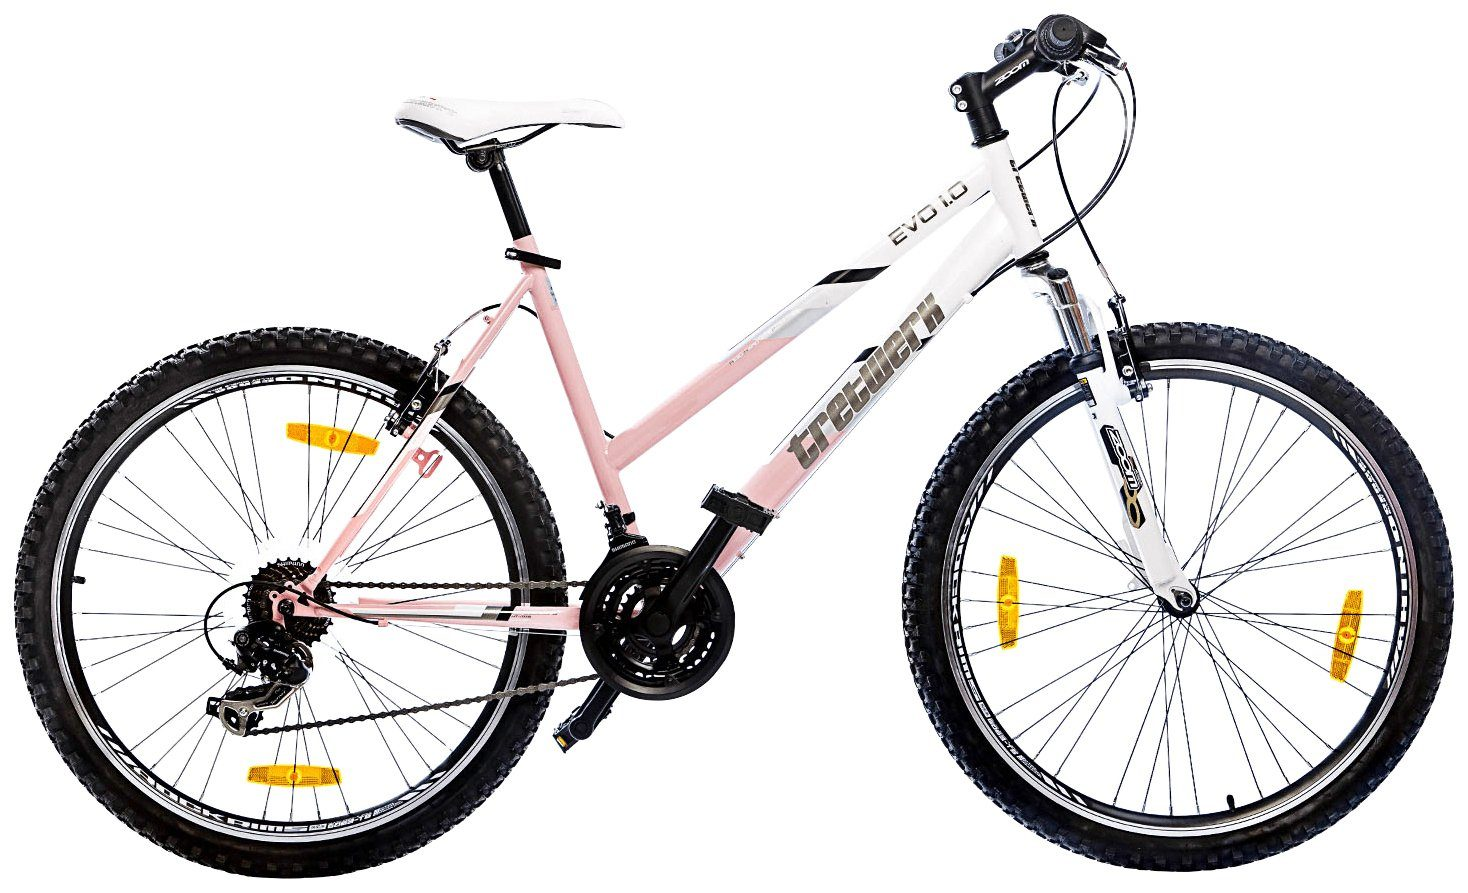 Mountainbike »Eva Lady«, 26 Zoll, 21 Gang, V-Bremsen